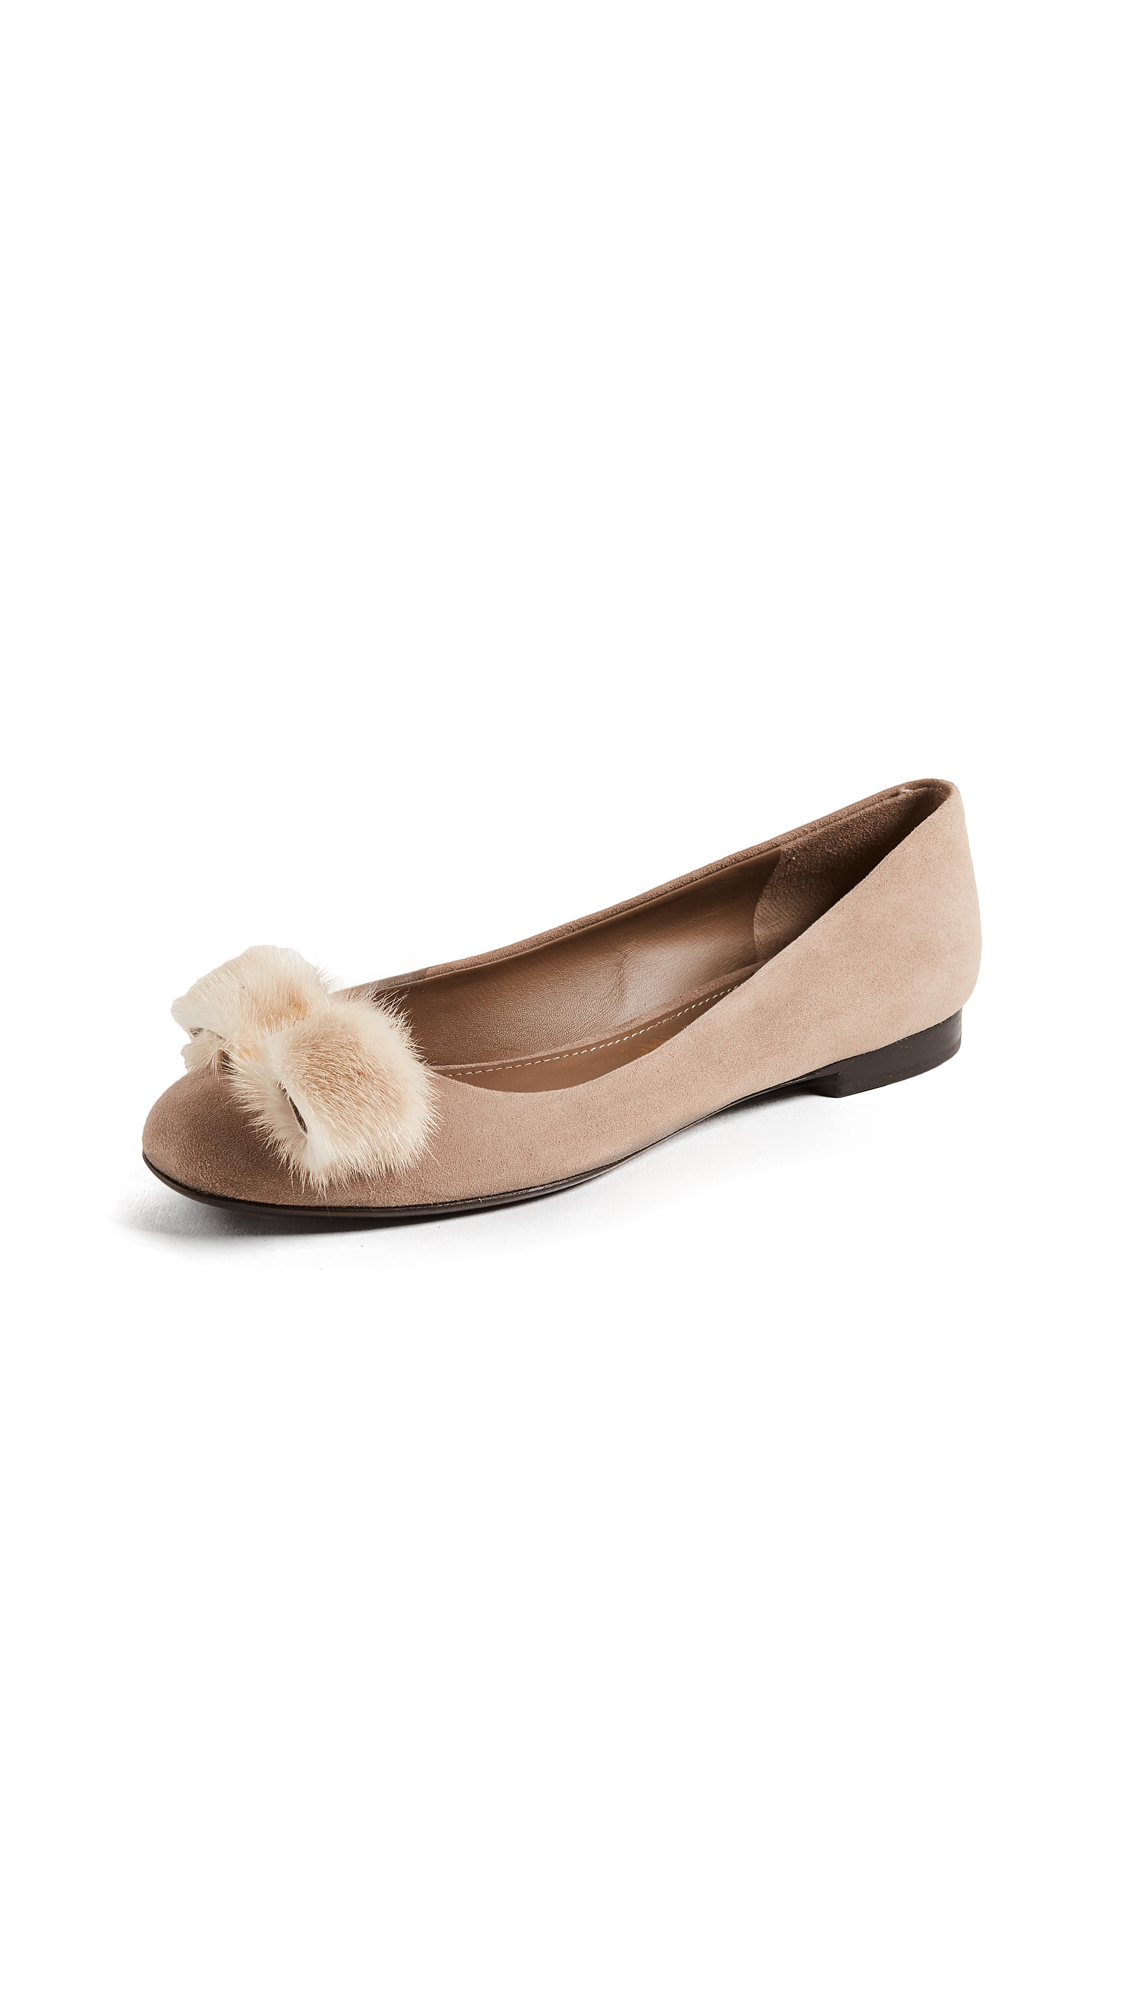 Salvatore Ferragamo Varina Flats with Fur Pom Poms - Clay